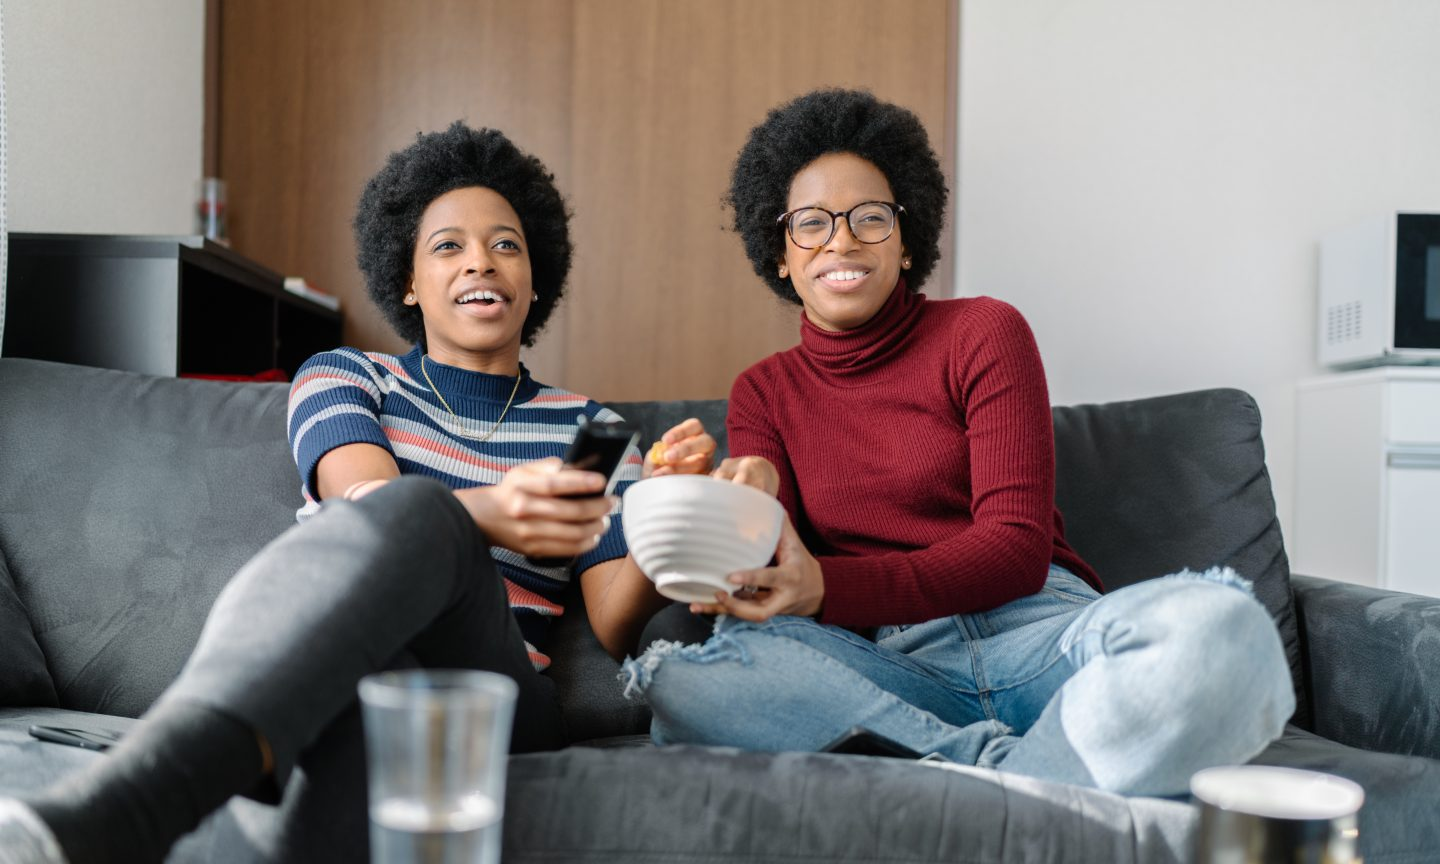 How Much Is Cable per Month? - NerdWallet